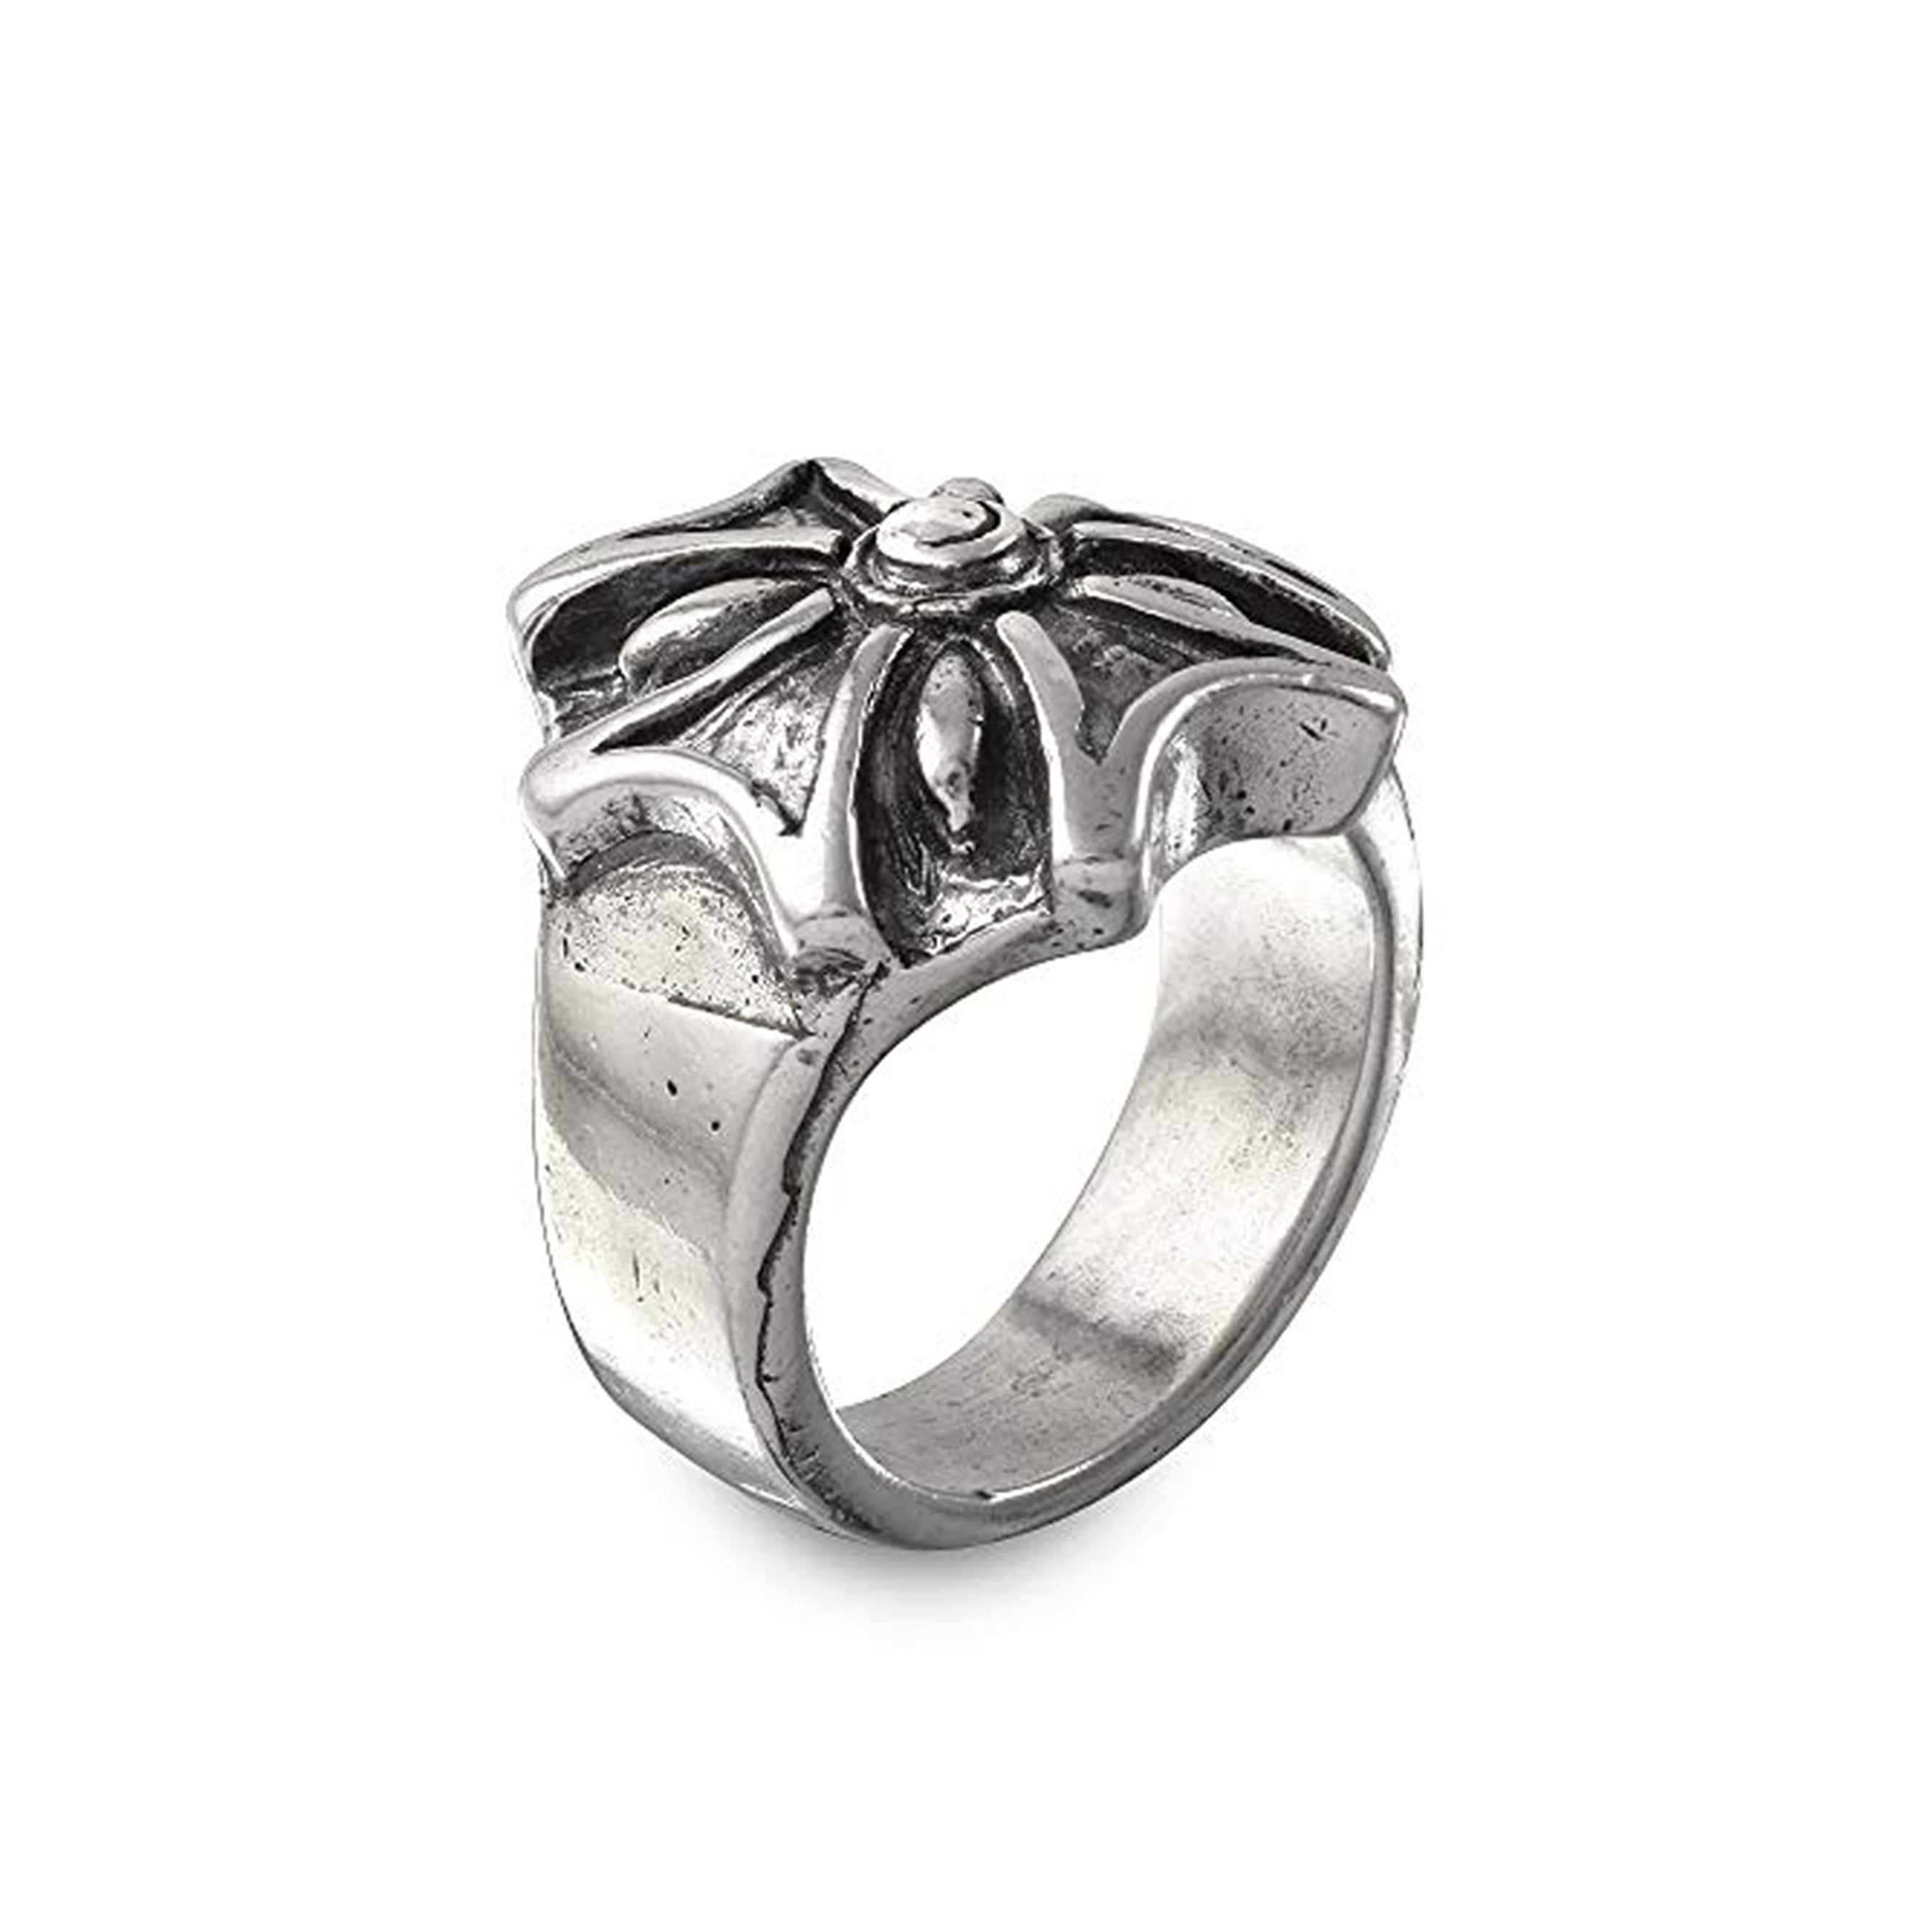 Iron Cross Sterling Silver Ring